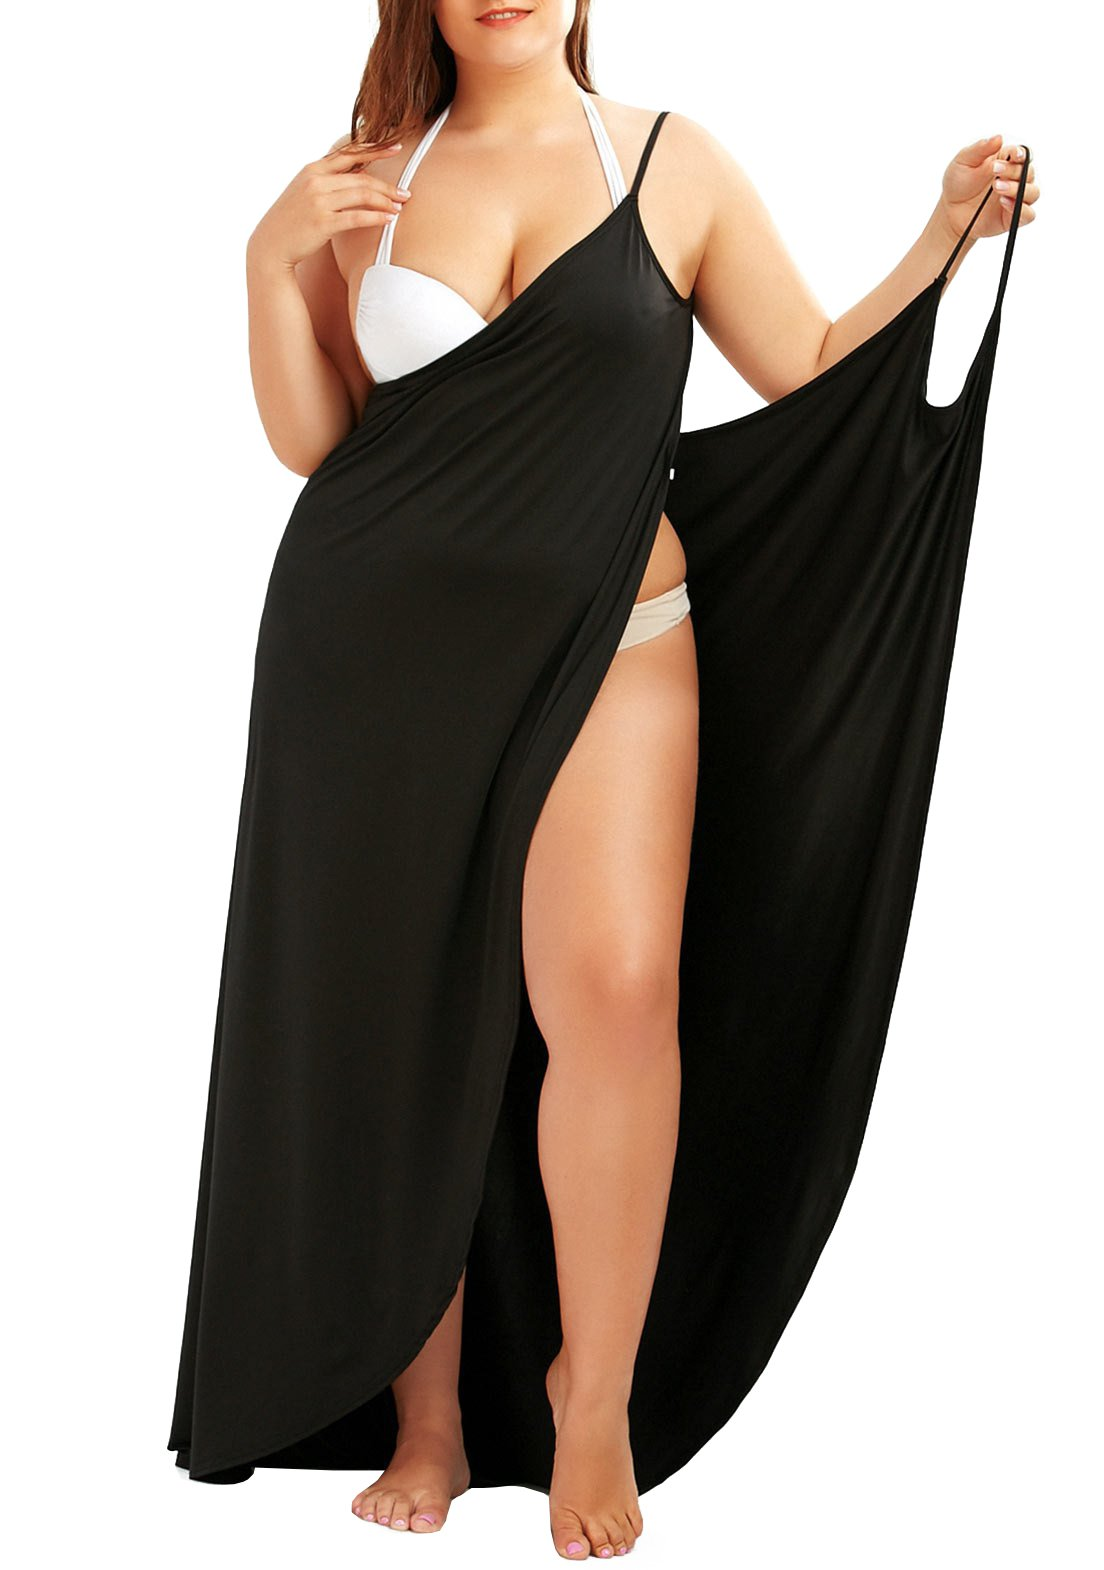 Plus Size Chuanqi Women's Spaghetti Strap Cover Up Beach Backless Wrap Long Dress, Black, XL